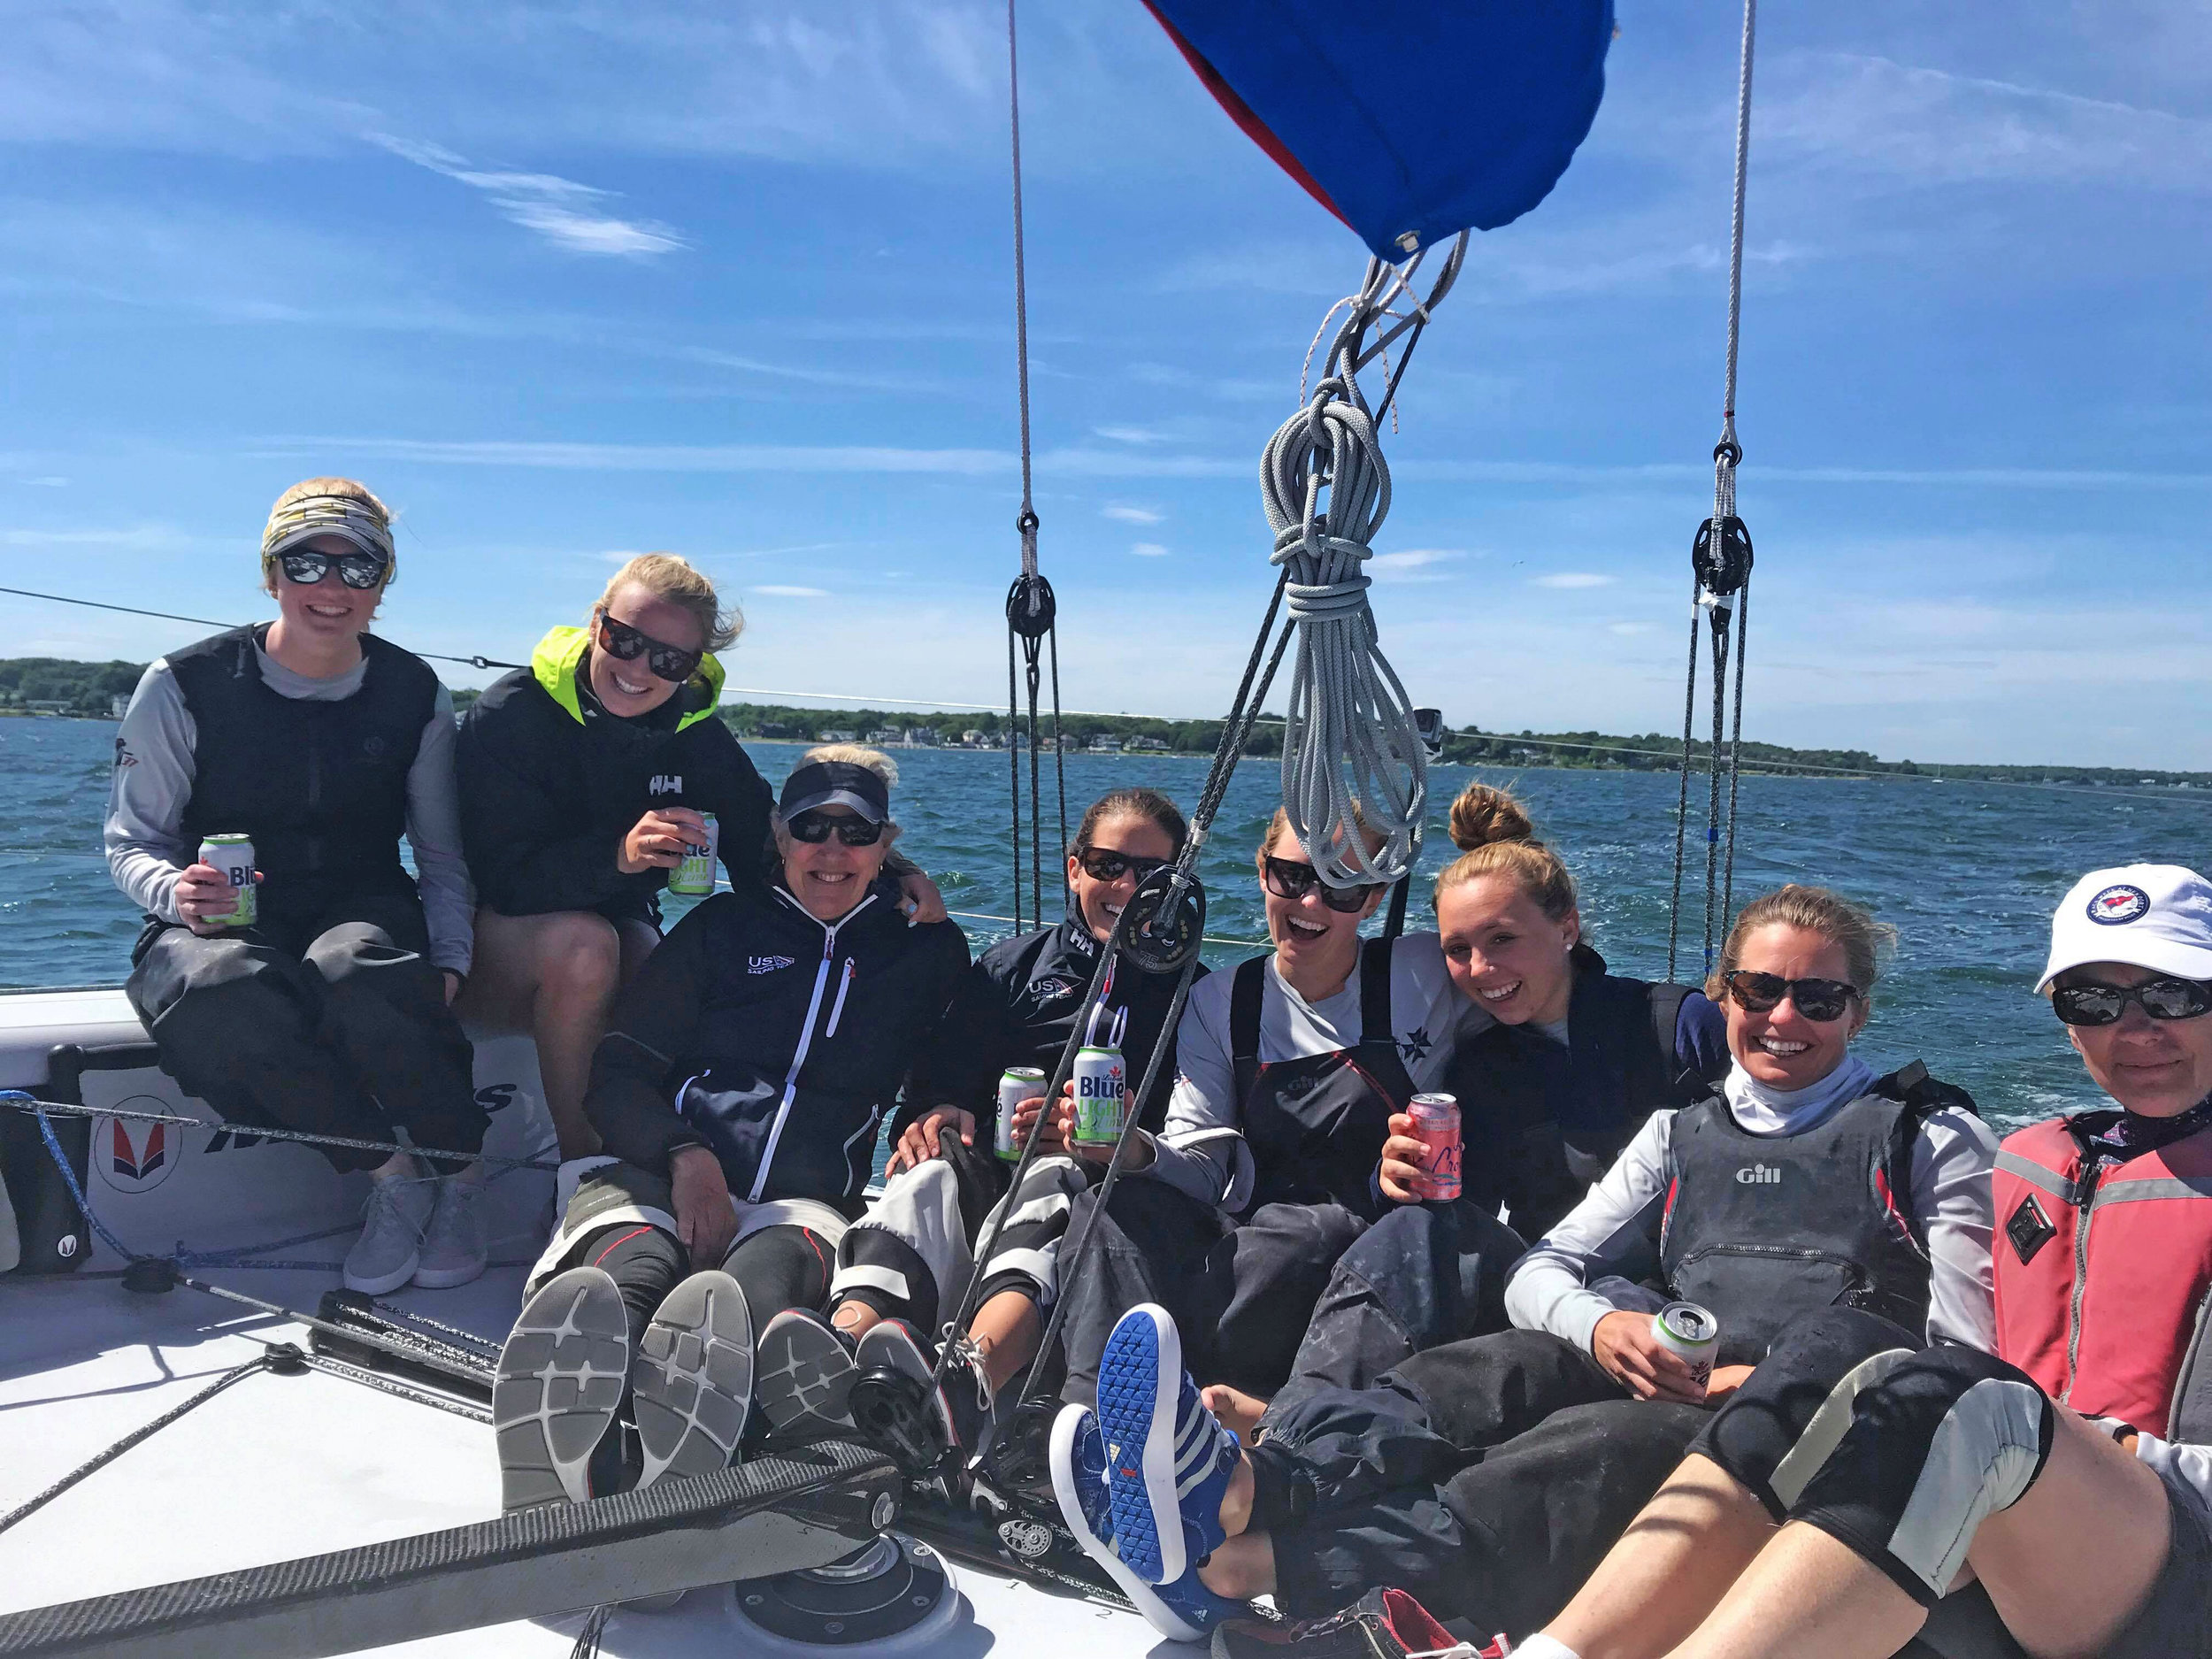 From Left: Amina Brown (runners), Katja Sertl (trimmer 1), Cory Sertl (co-skipper/tactician), Meredith Carroll (mast), Hollis Barth (trimmer 2), Colette Fortenberry (float, squirrel, assistant), Hillary Noble (bow), Kathy Kirk (pit)